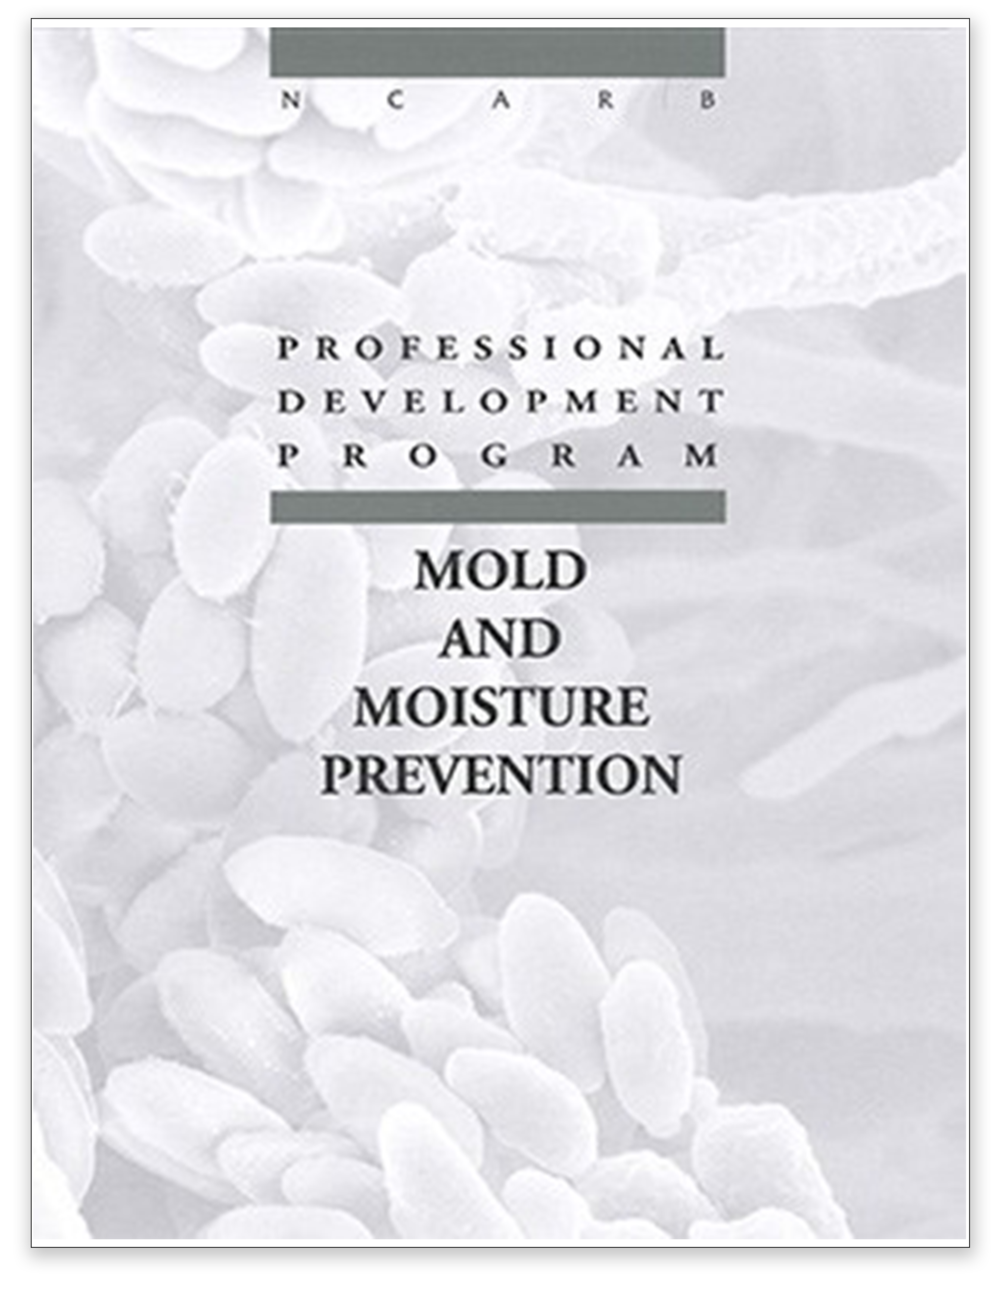 Mold and Moisture Prevention@2x.png